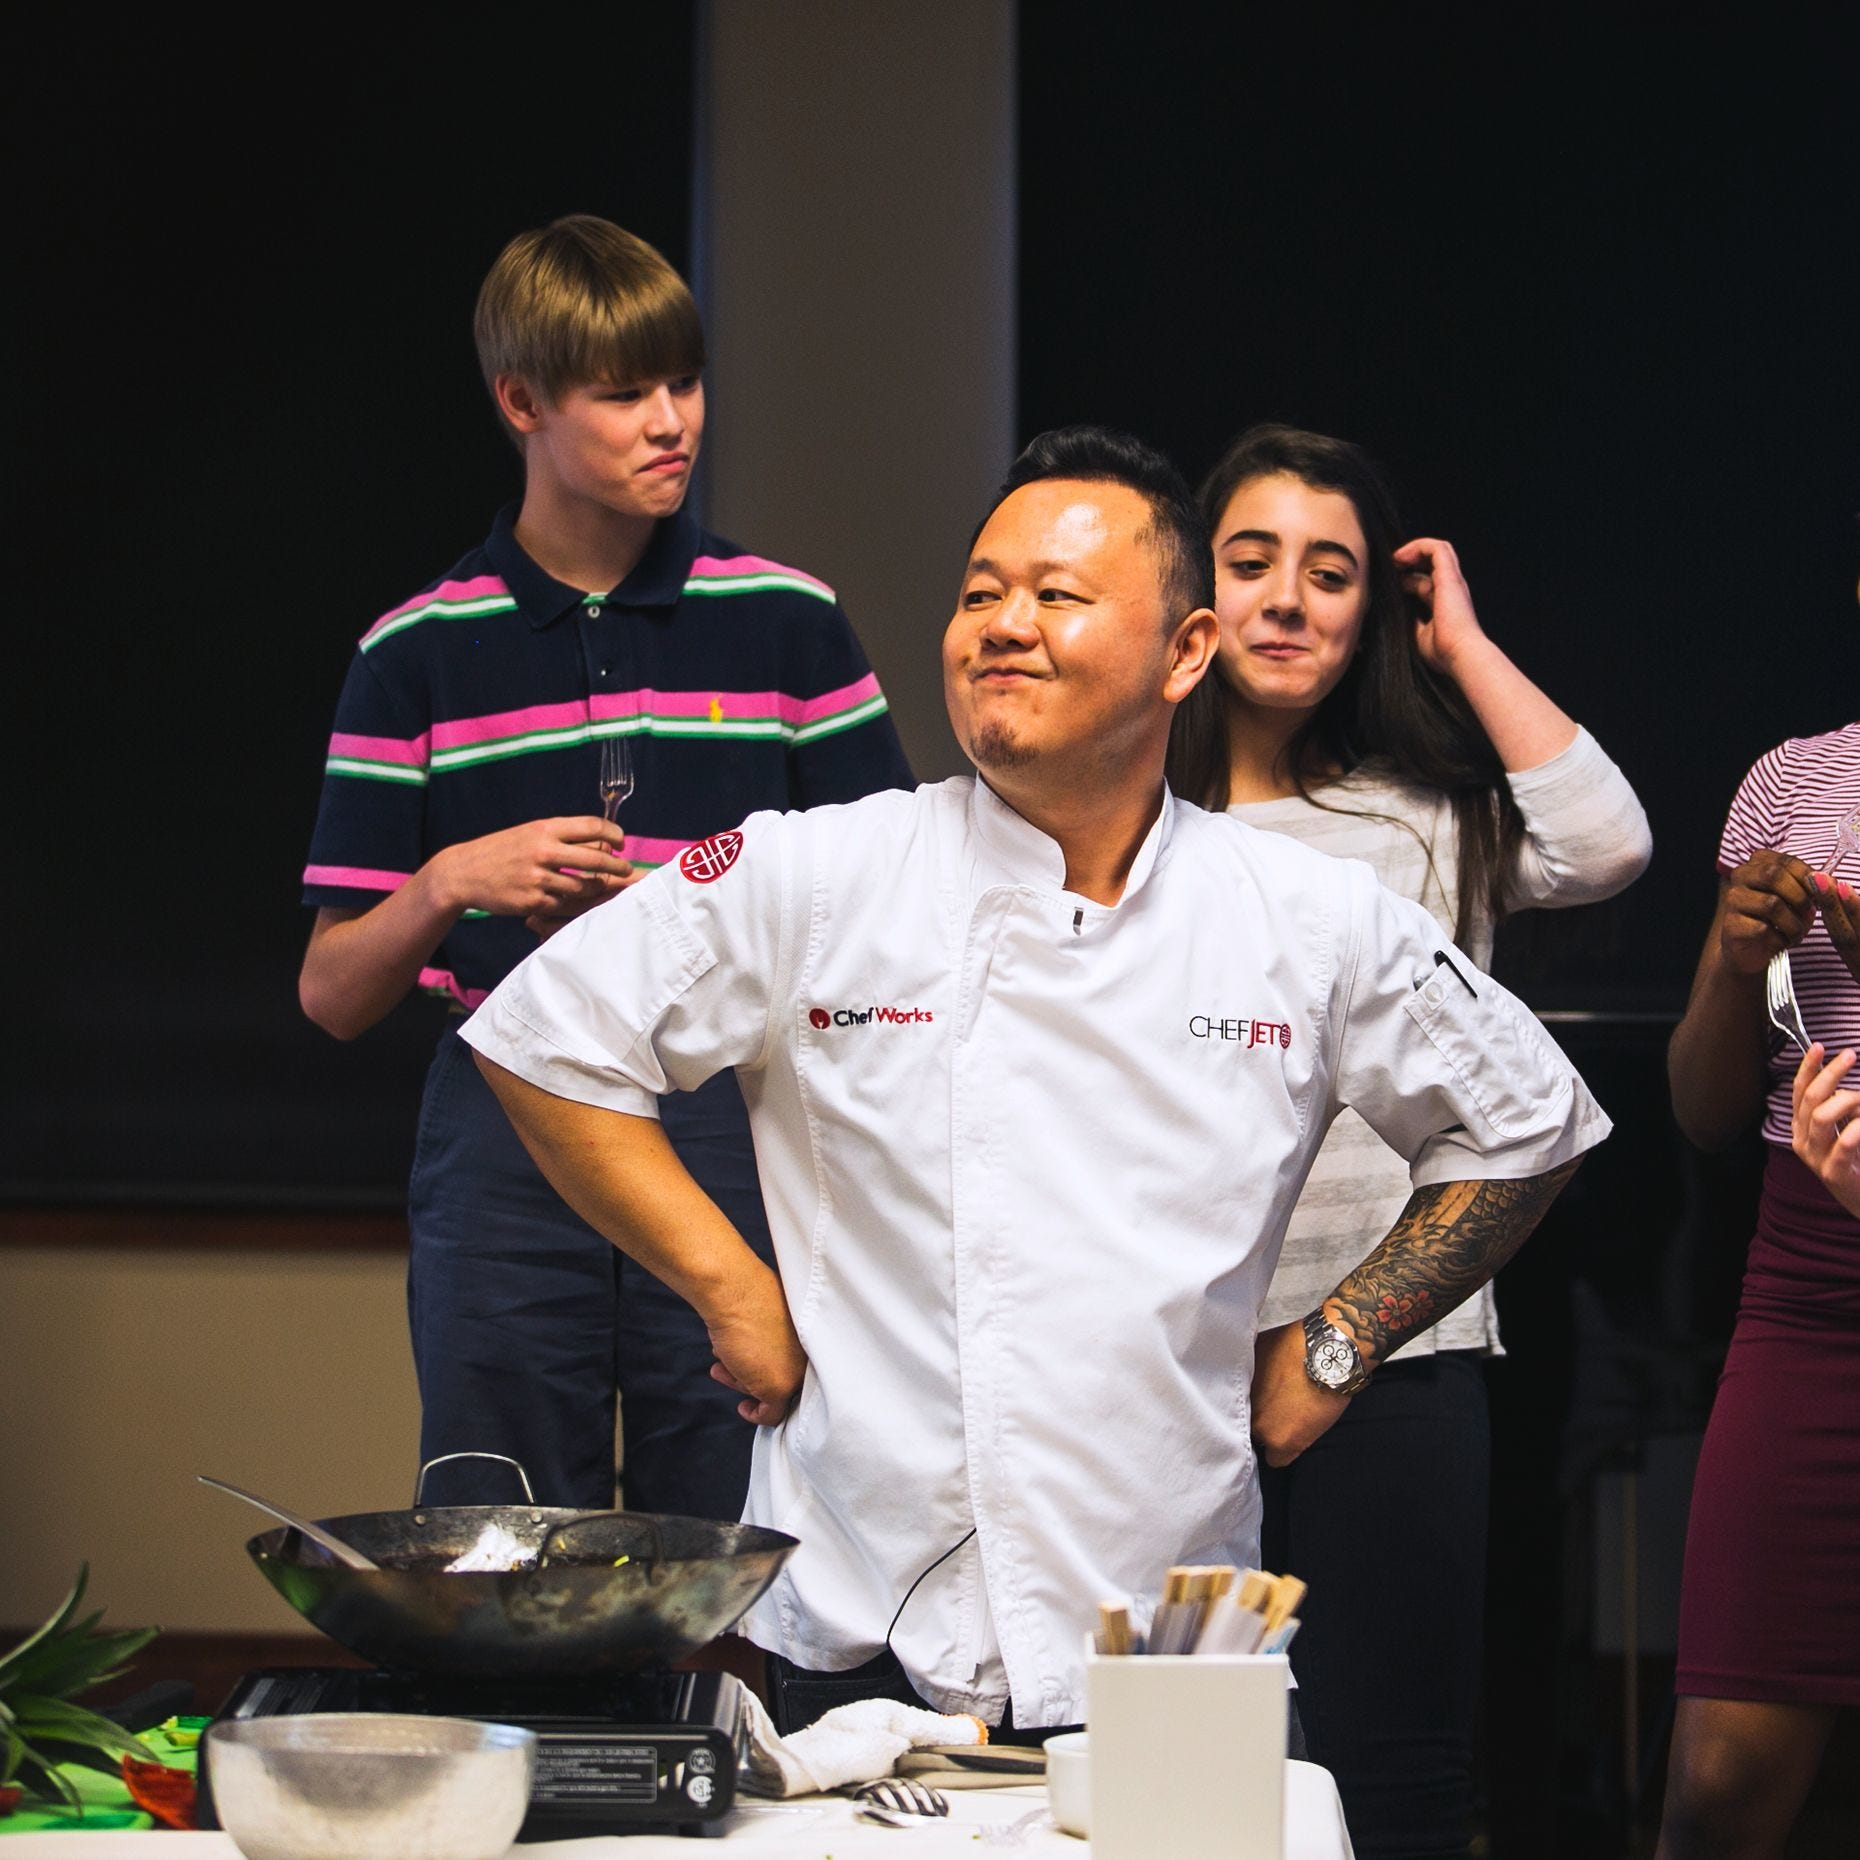 Celebrity chef coming to Marysville High School